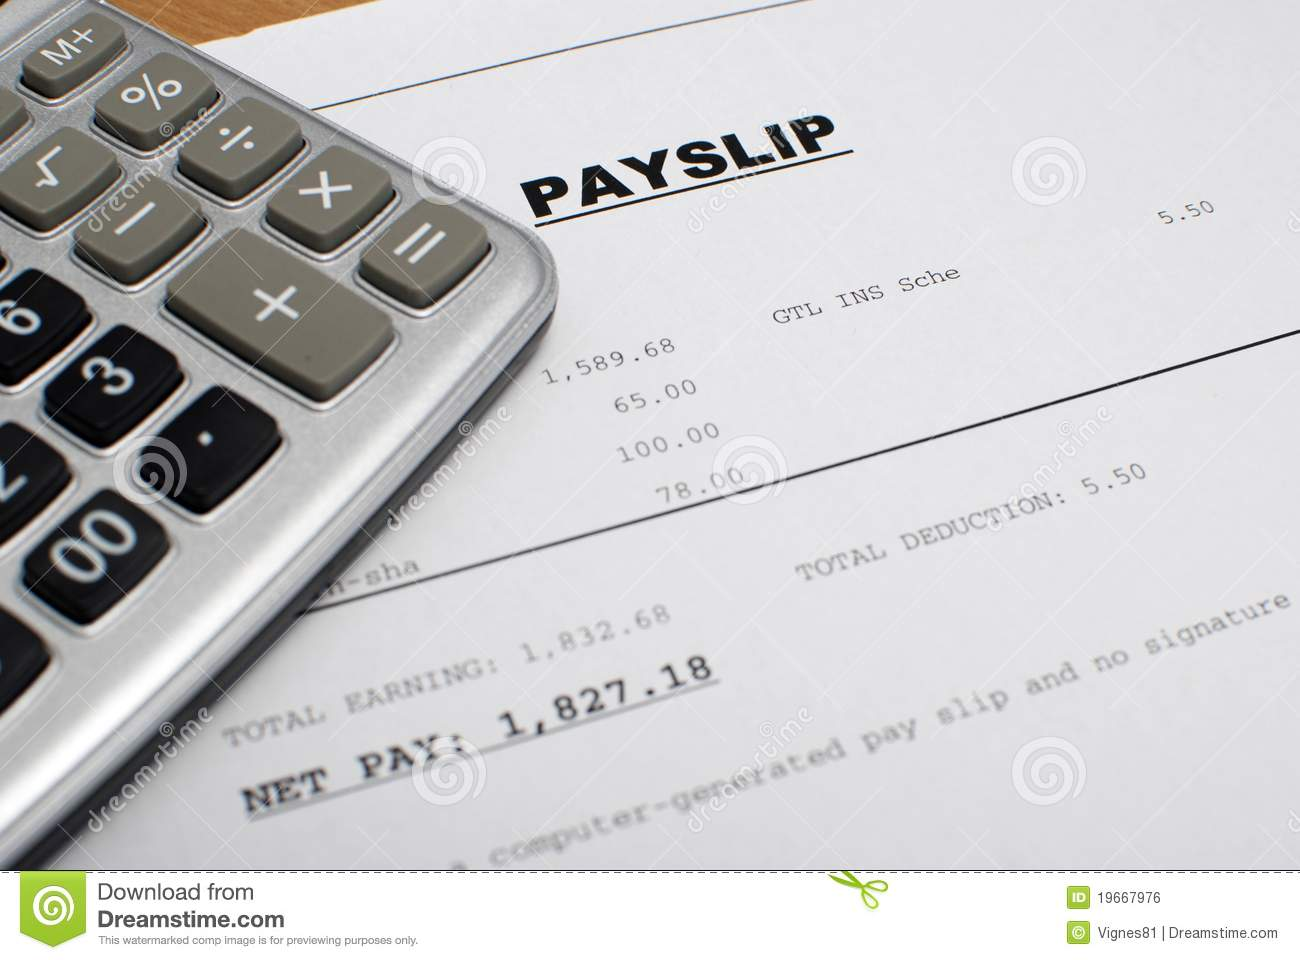 Download Payslips compliance officer resume samples – Pay Slip Download